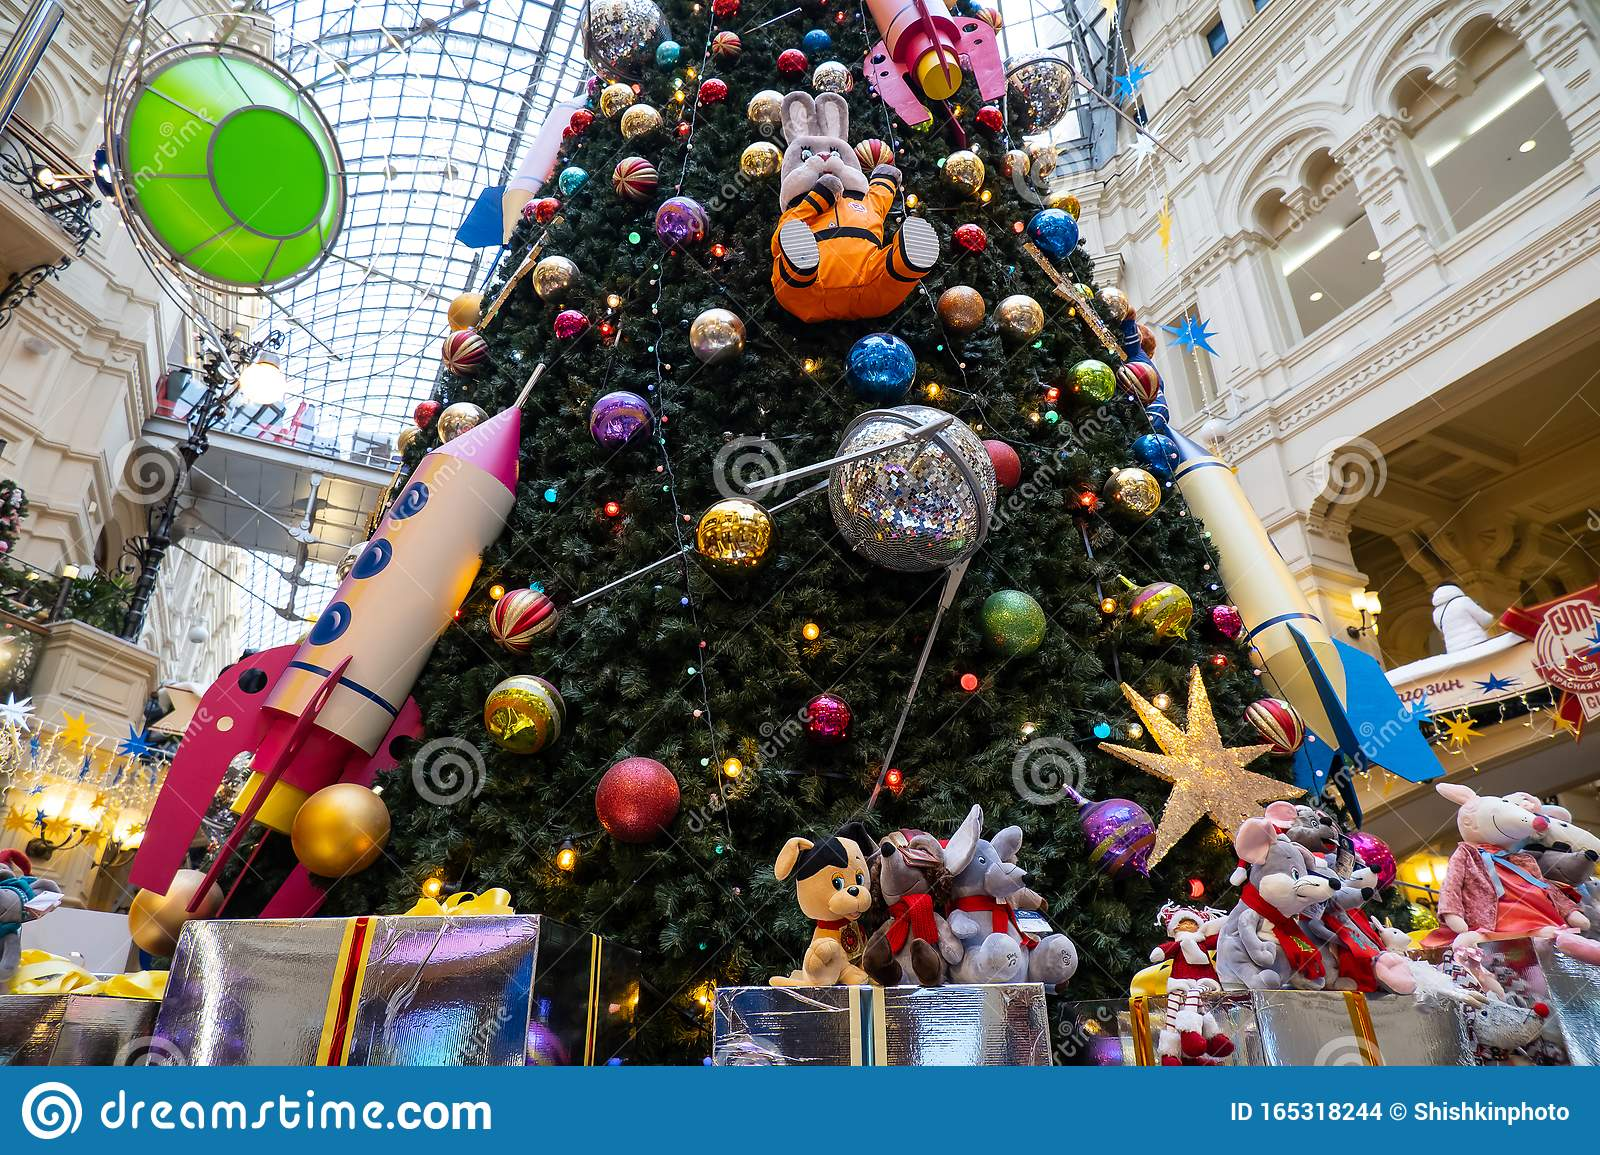 Moscow Russia November 25 2019 New Year Tree With Cartoon Toys In The State Department Store On Red Square Editorial Stock Image Image Of Celebration Design 165318244